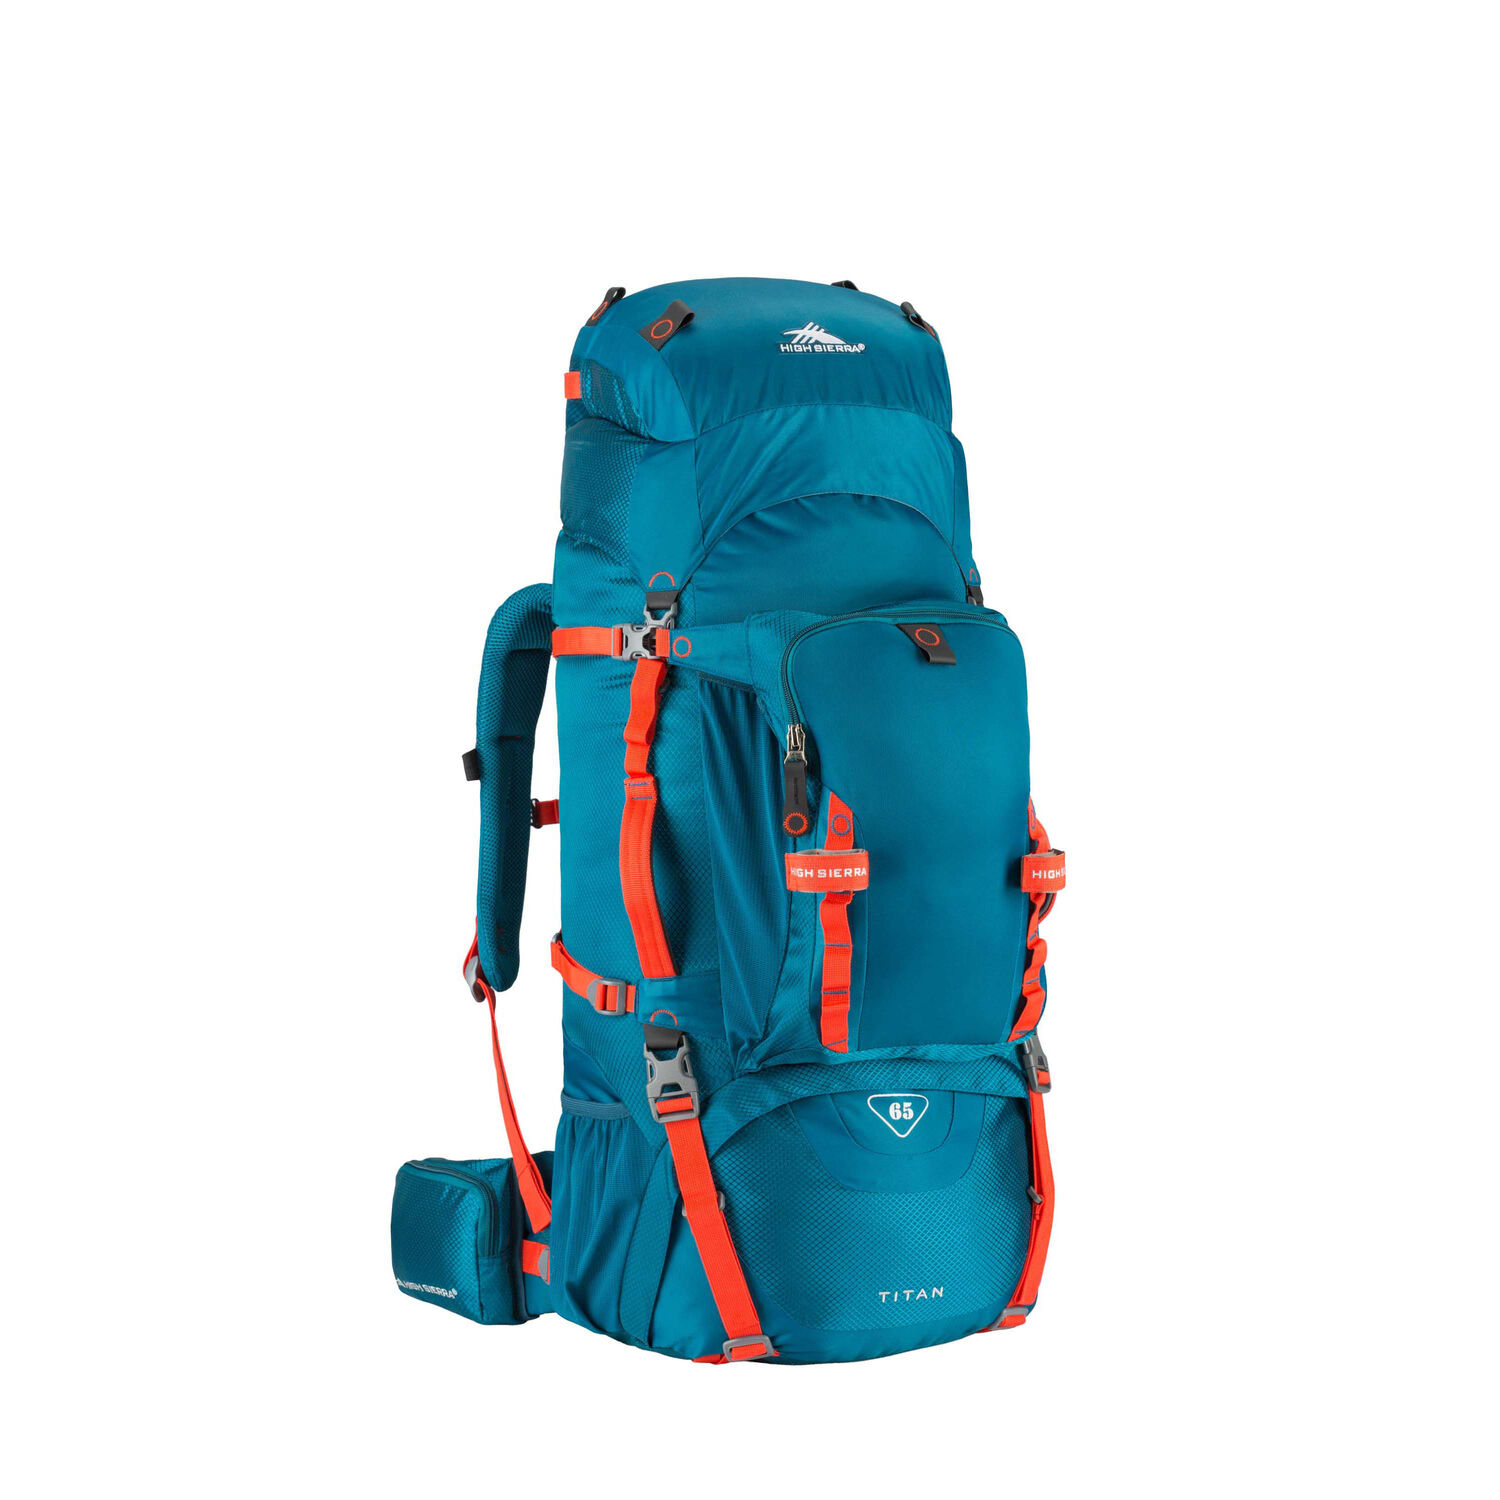 High Sierra Titan 65 Frame Pack